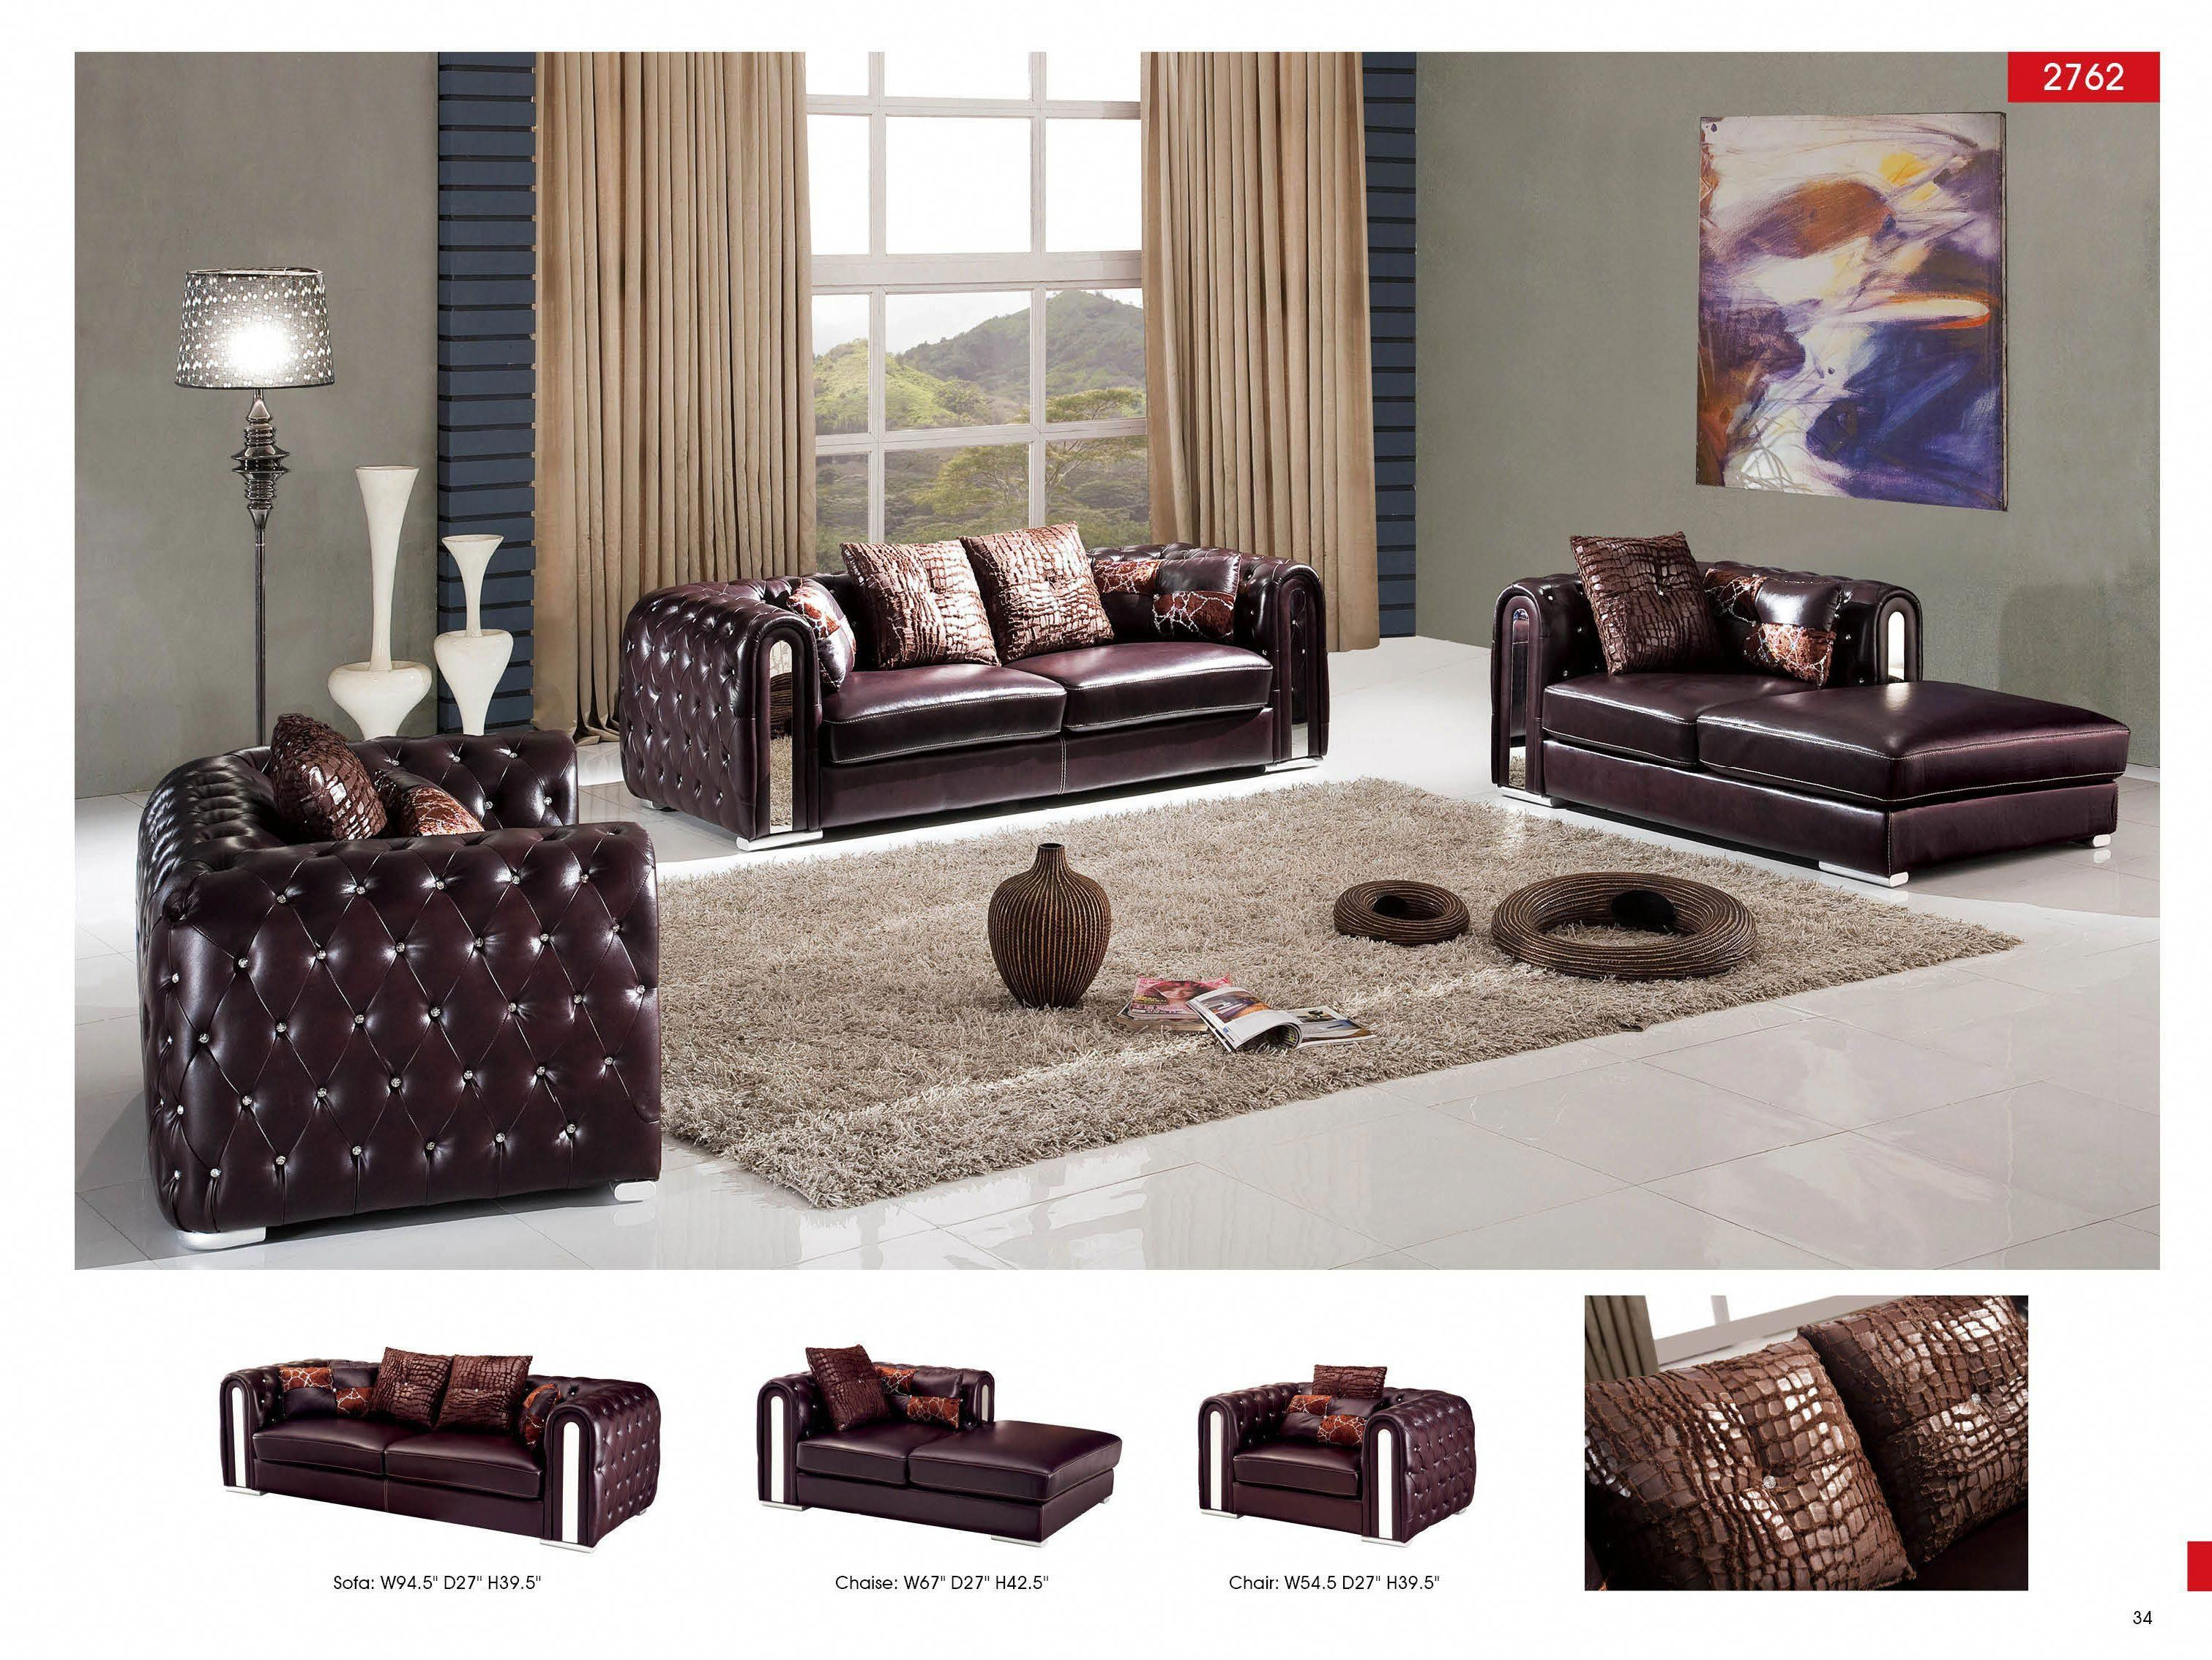 14 14 Piece Living Room Set, Most Engaging and also ...